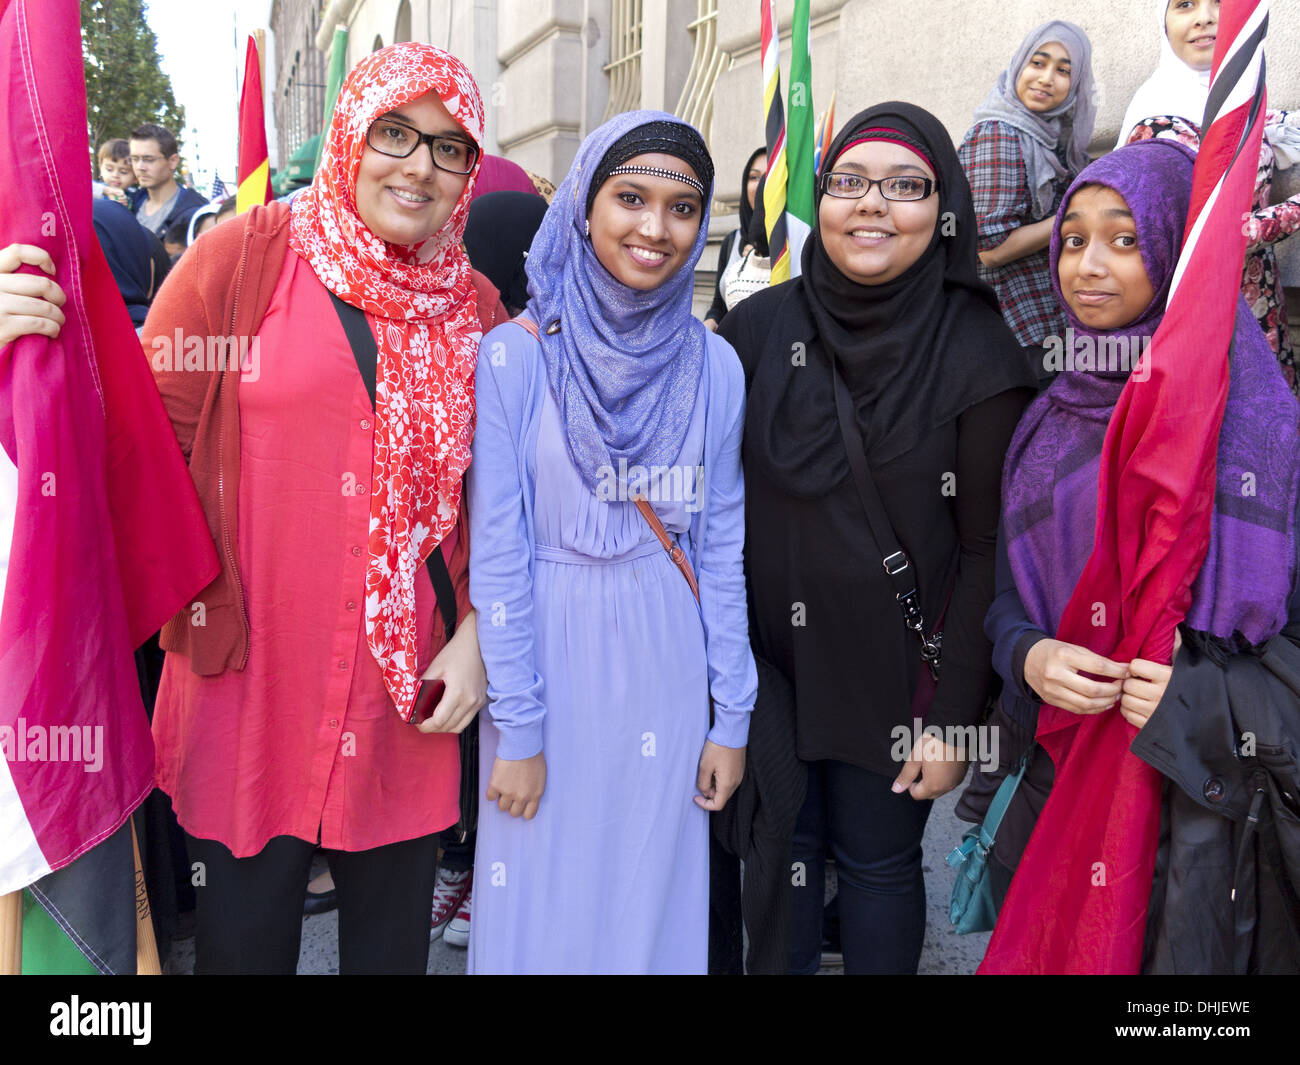 Muslim women of varied backgrounds at Annual Muslim Day Parade, New York City, 2013. - Stock Image